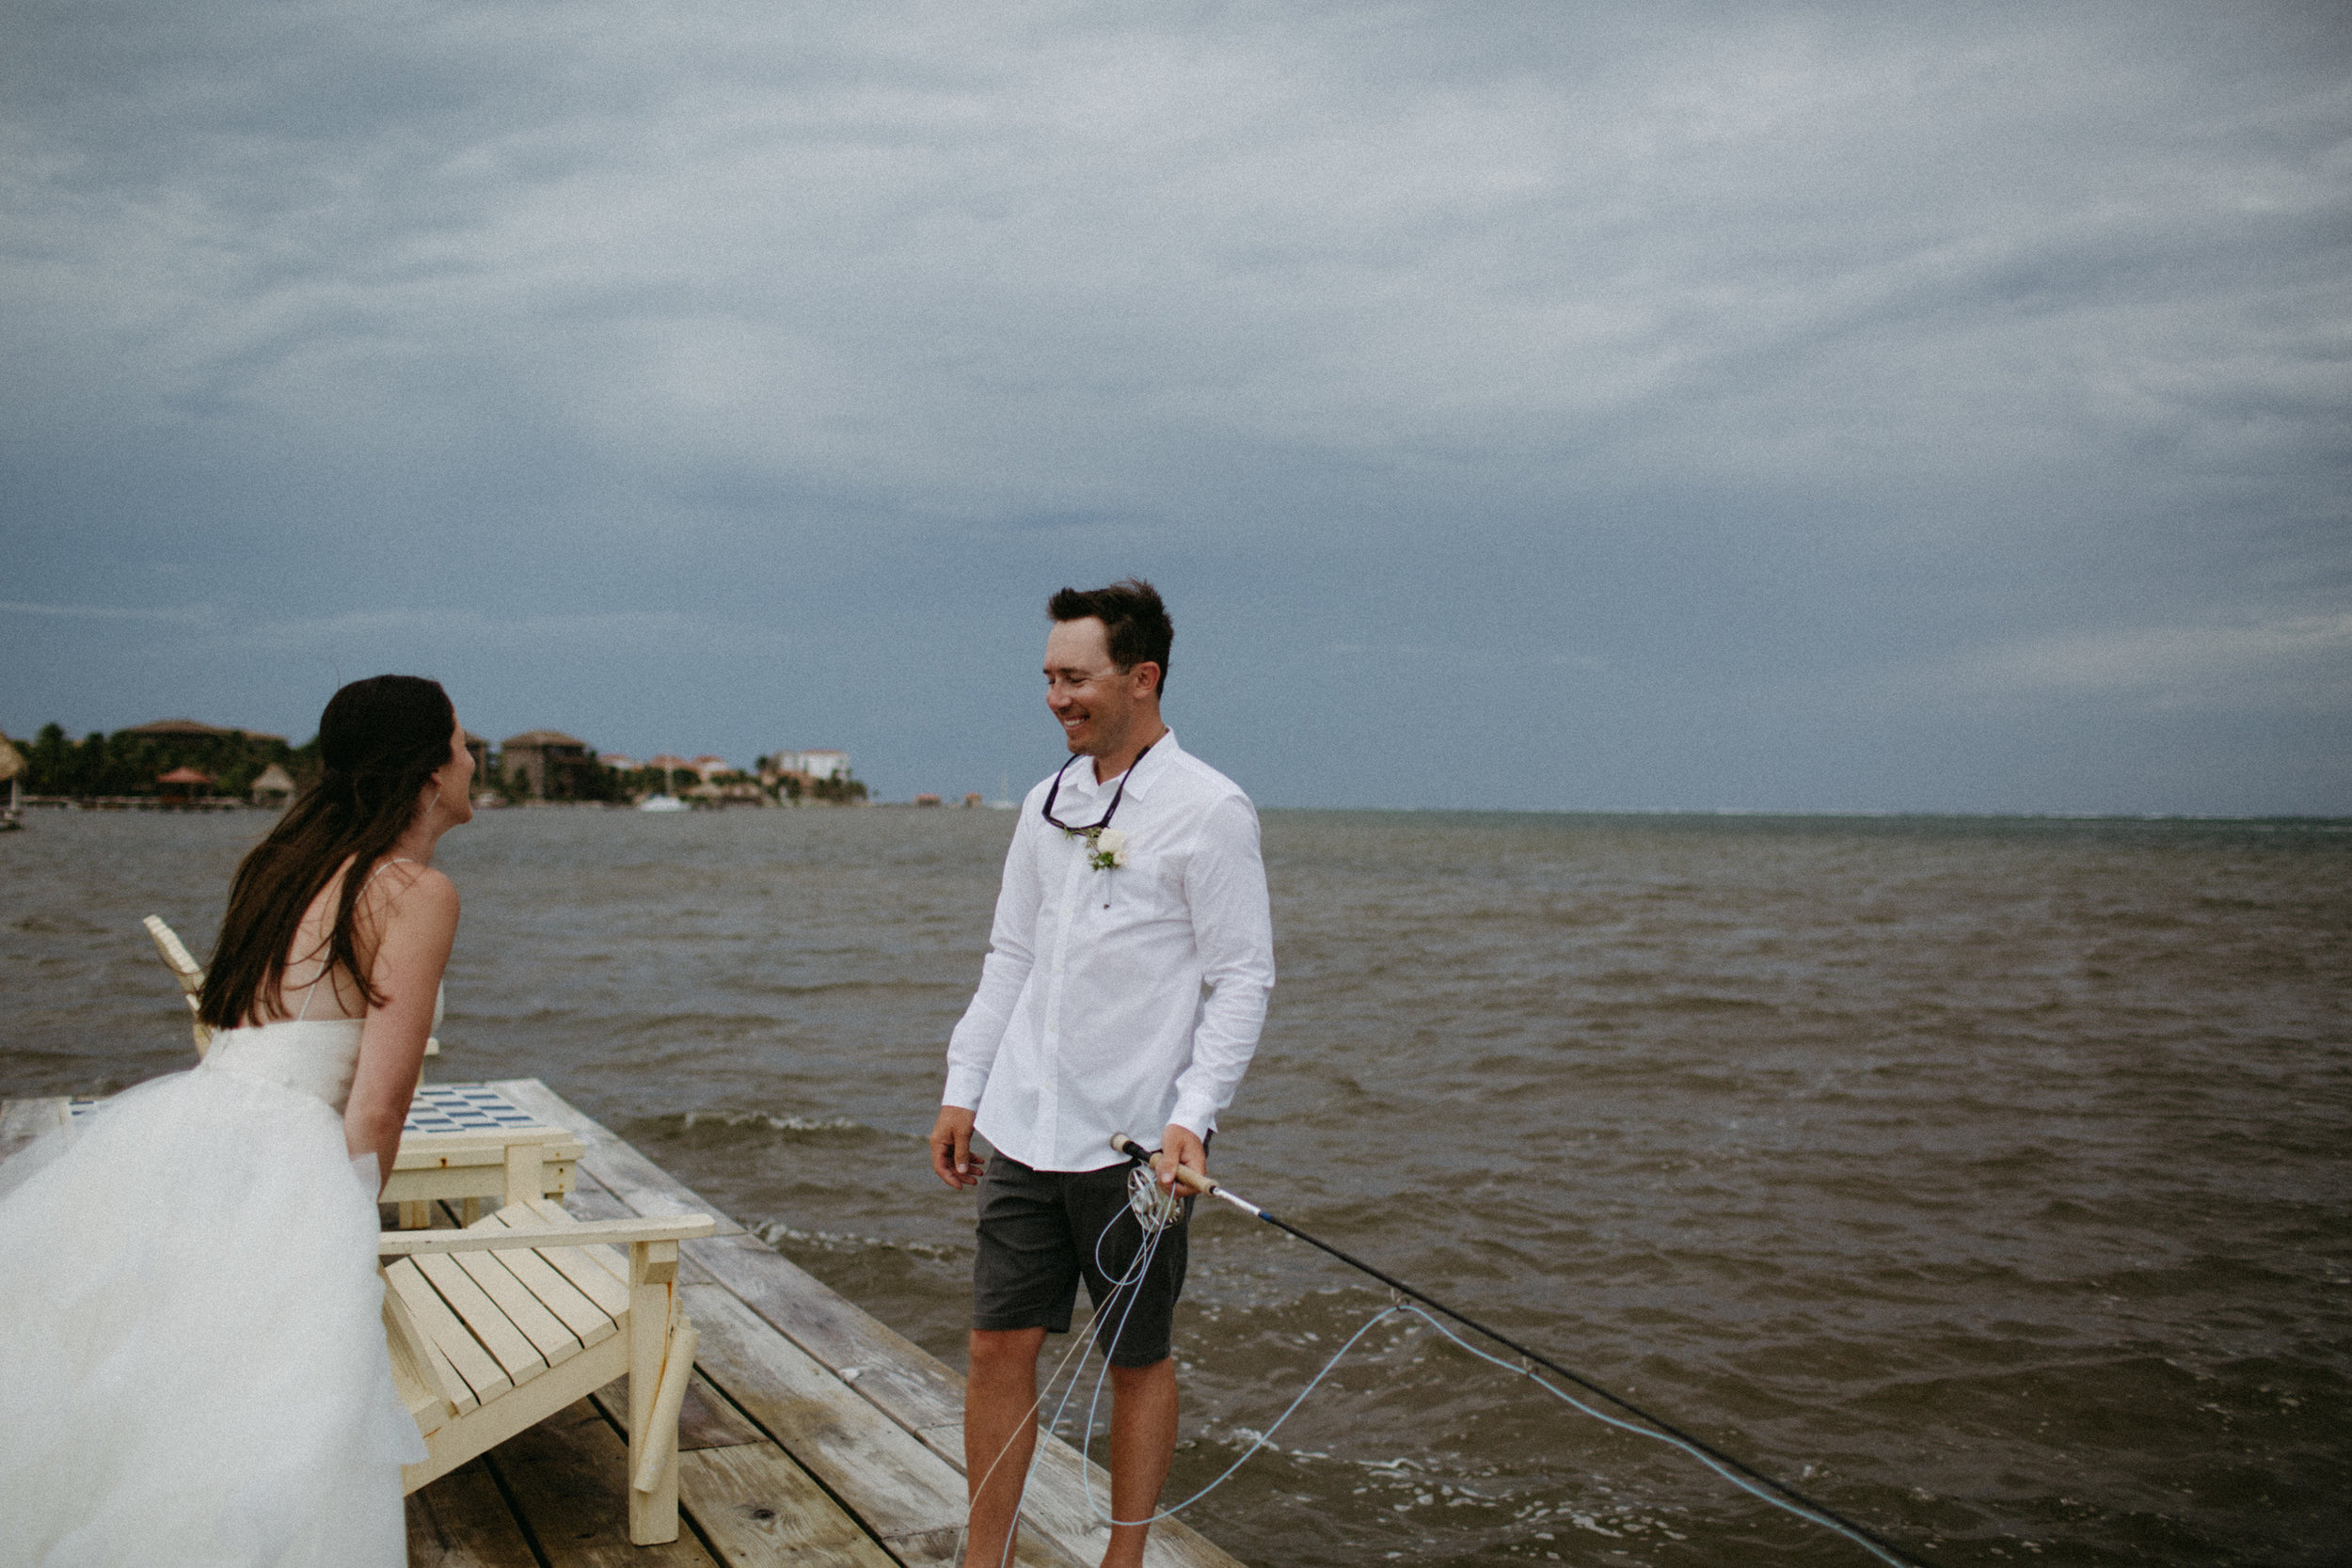 san-pescador-belize-wedding-christinemariephoto-j-k-34.jpg